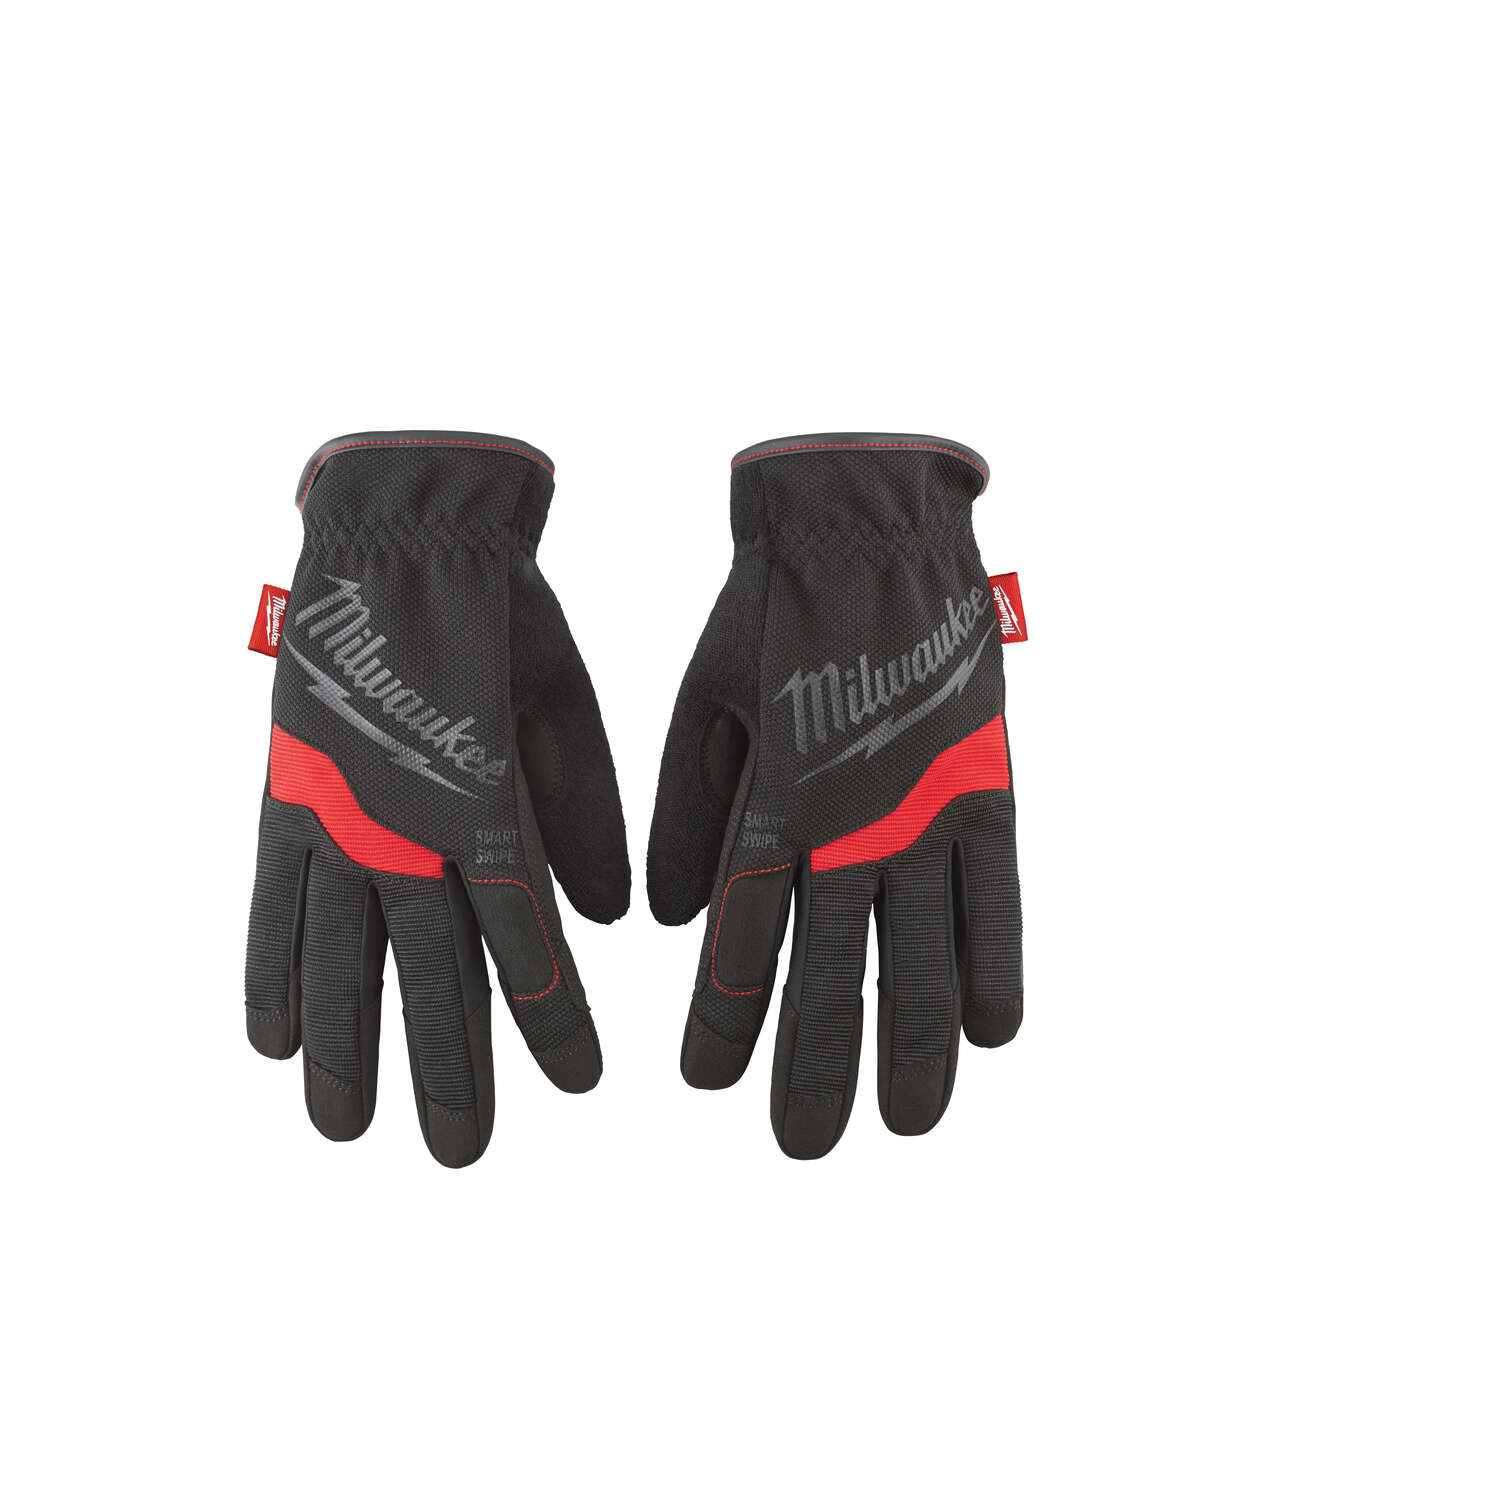 Milwaukee FreeFlex Spandex/Synthetic Leather Work Gloves Black/Red XL 1 pair